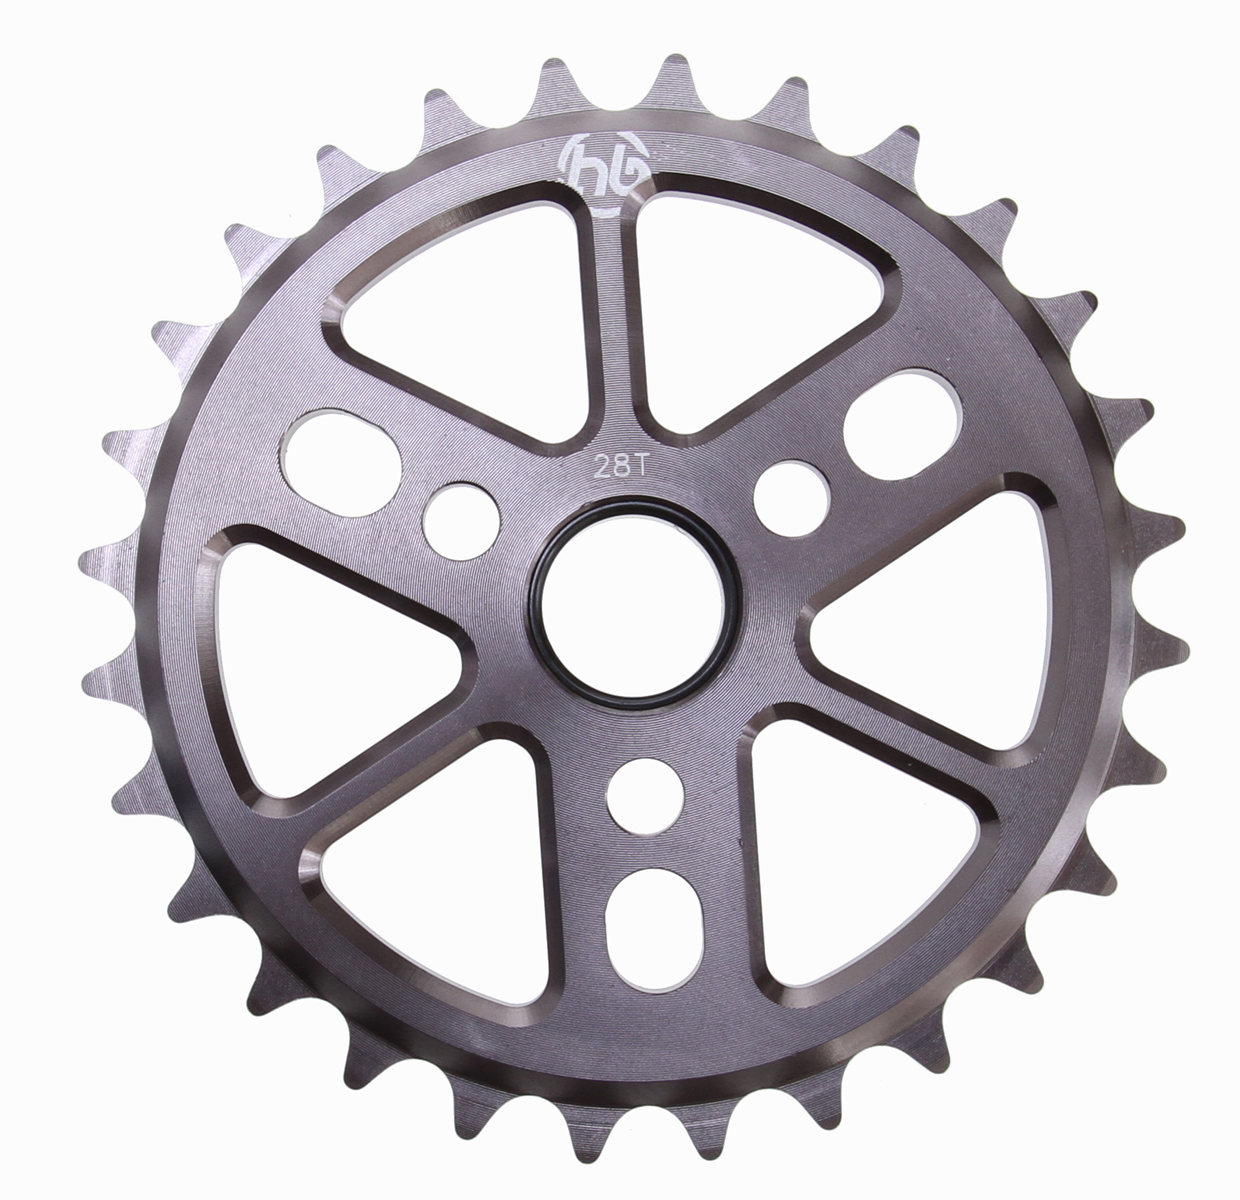 BMX Made from 6061 Aluminum, this sleek and lightweight sprocket has weight saving cut outs without sacrificing strength. Key Features of the Hoffman Dinky 6061 Alloy Sprocket Bronze 28T: Machined 6061 Aluminum 5.5mm thick 3 crank position holes 2.4oz (25t) - $22.95